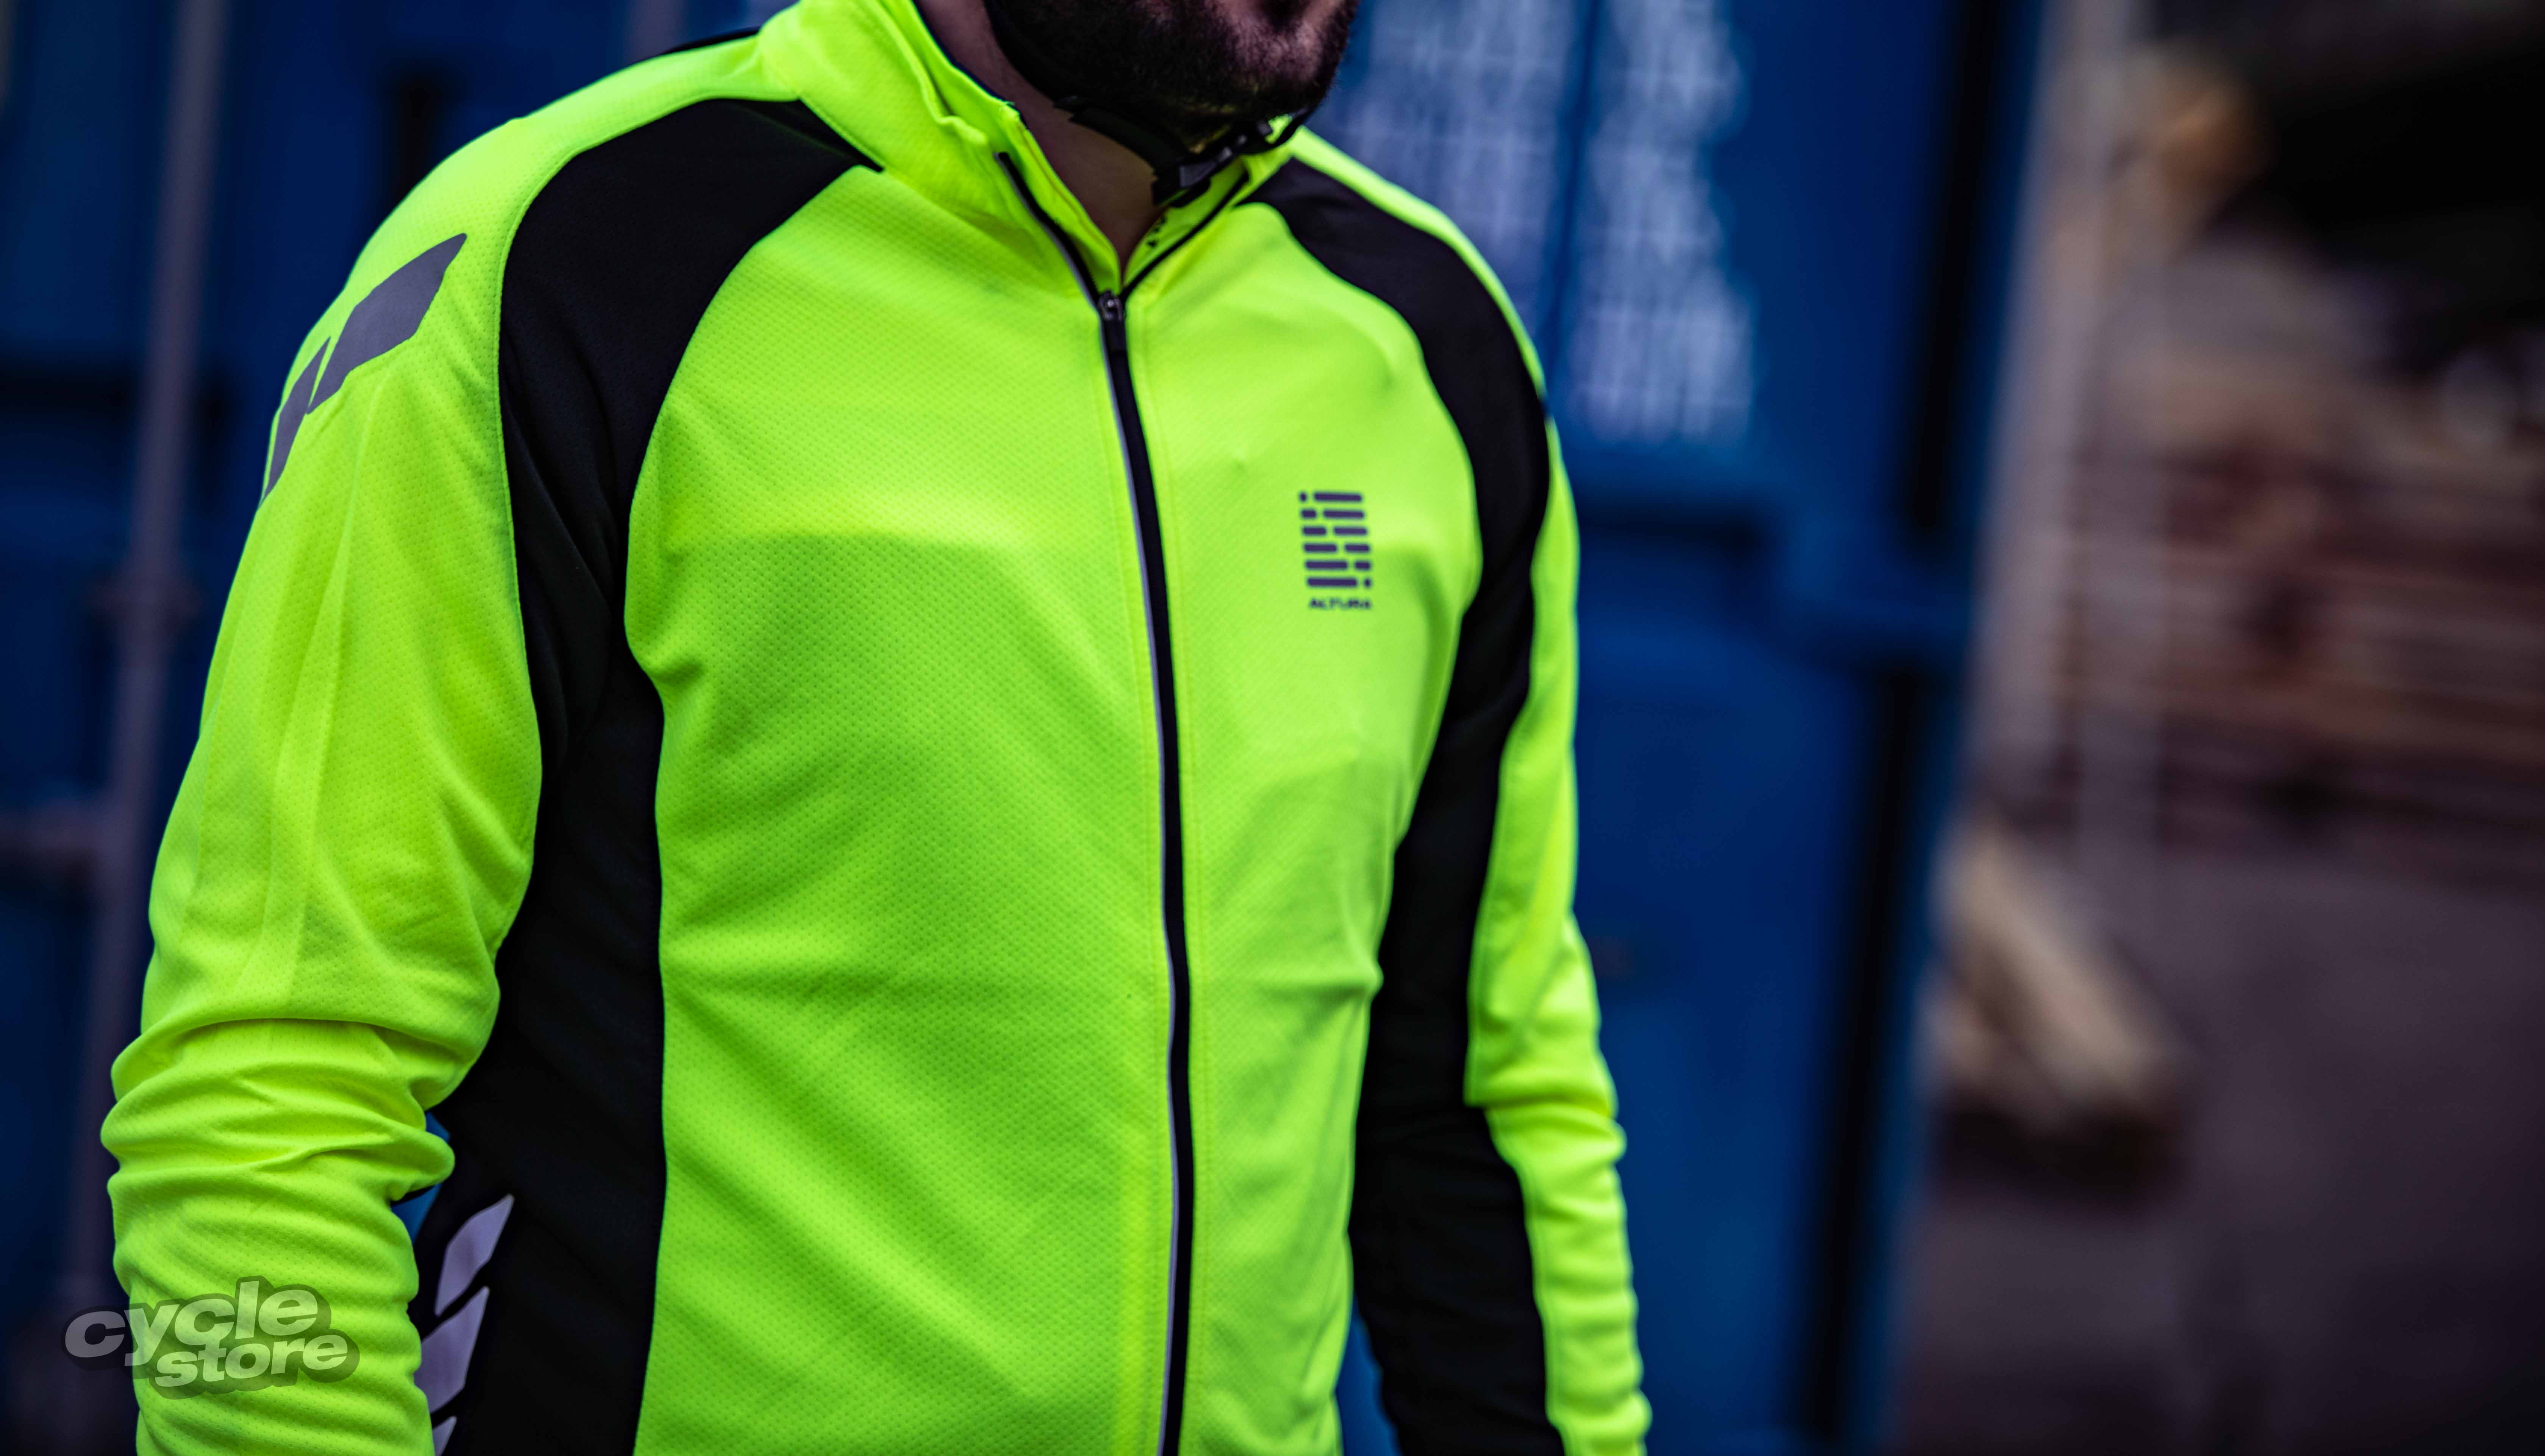 Altura Nightvision Kinetic Long Sleeve Jersey Review - ac36a8ceb